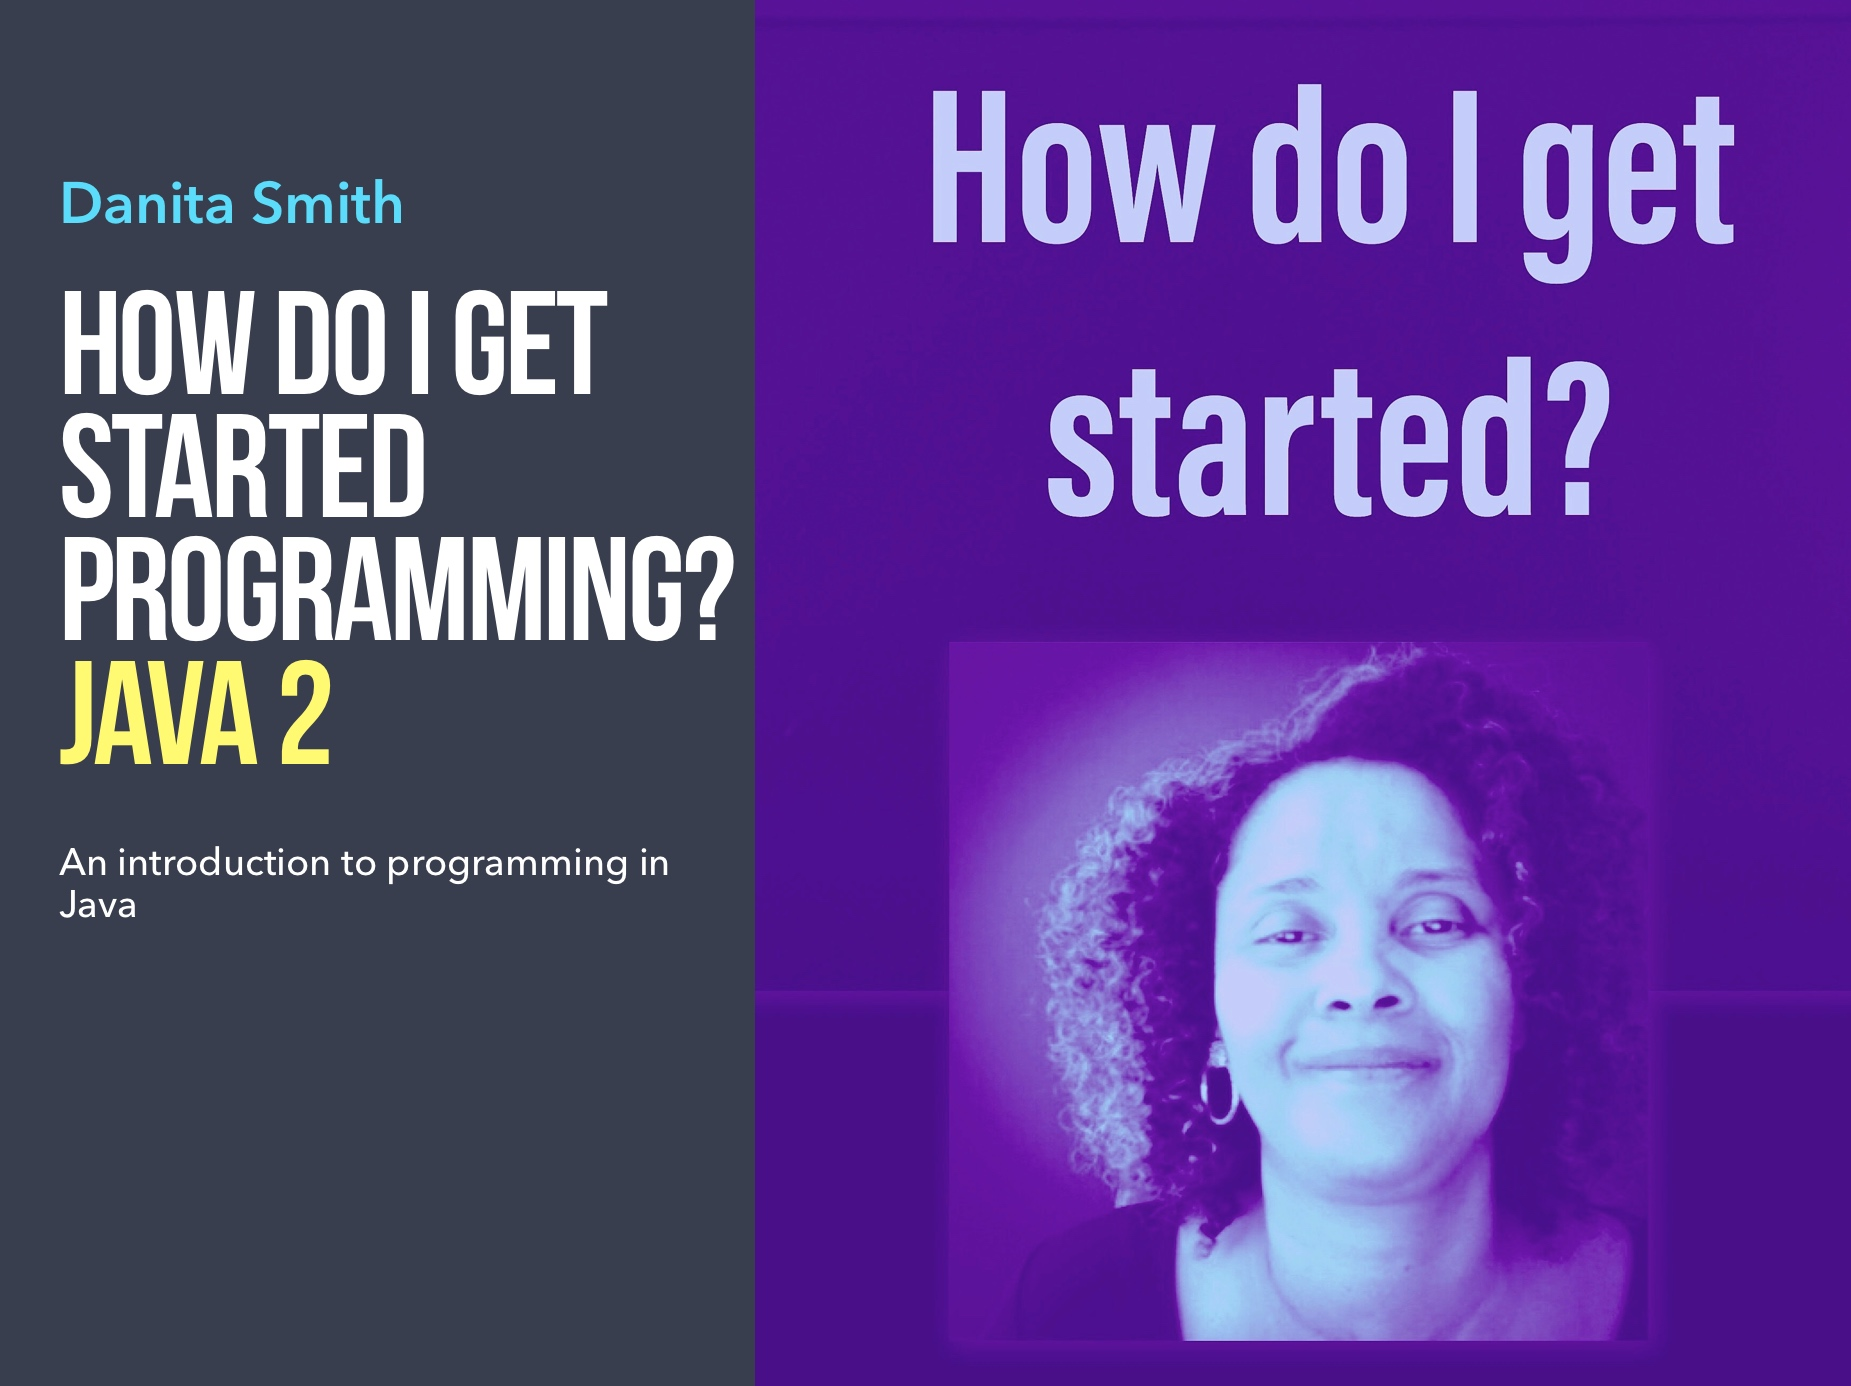 How Do I Get Started? Java 2